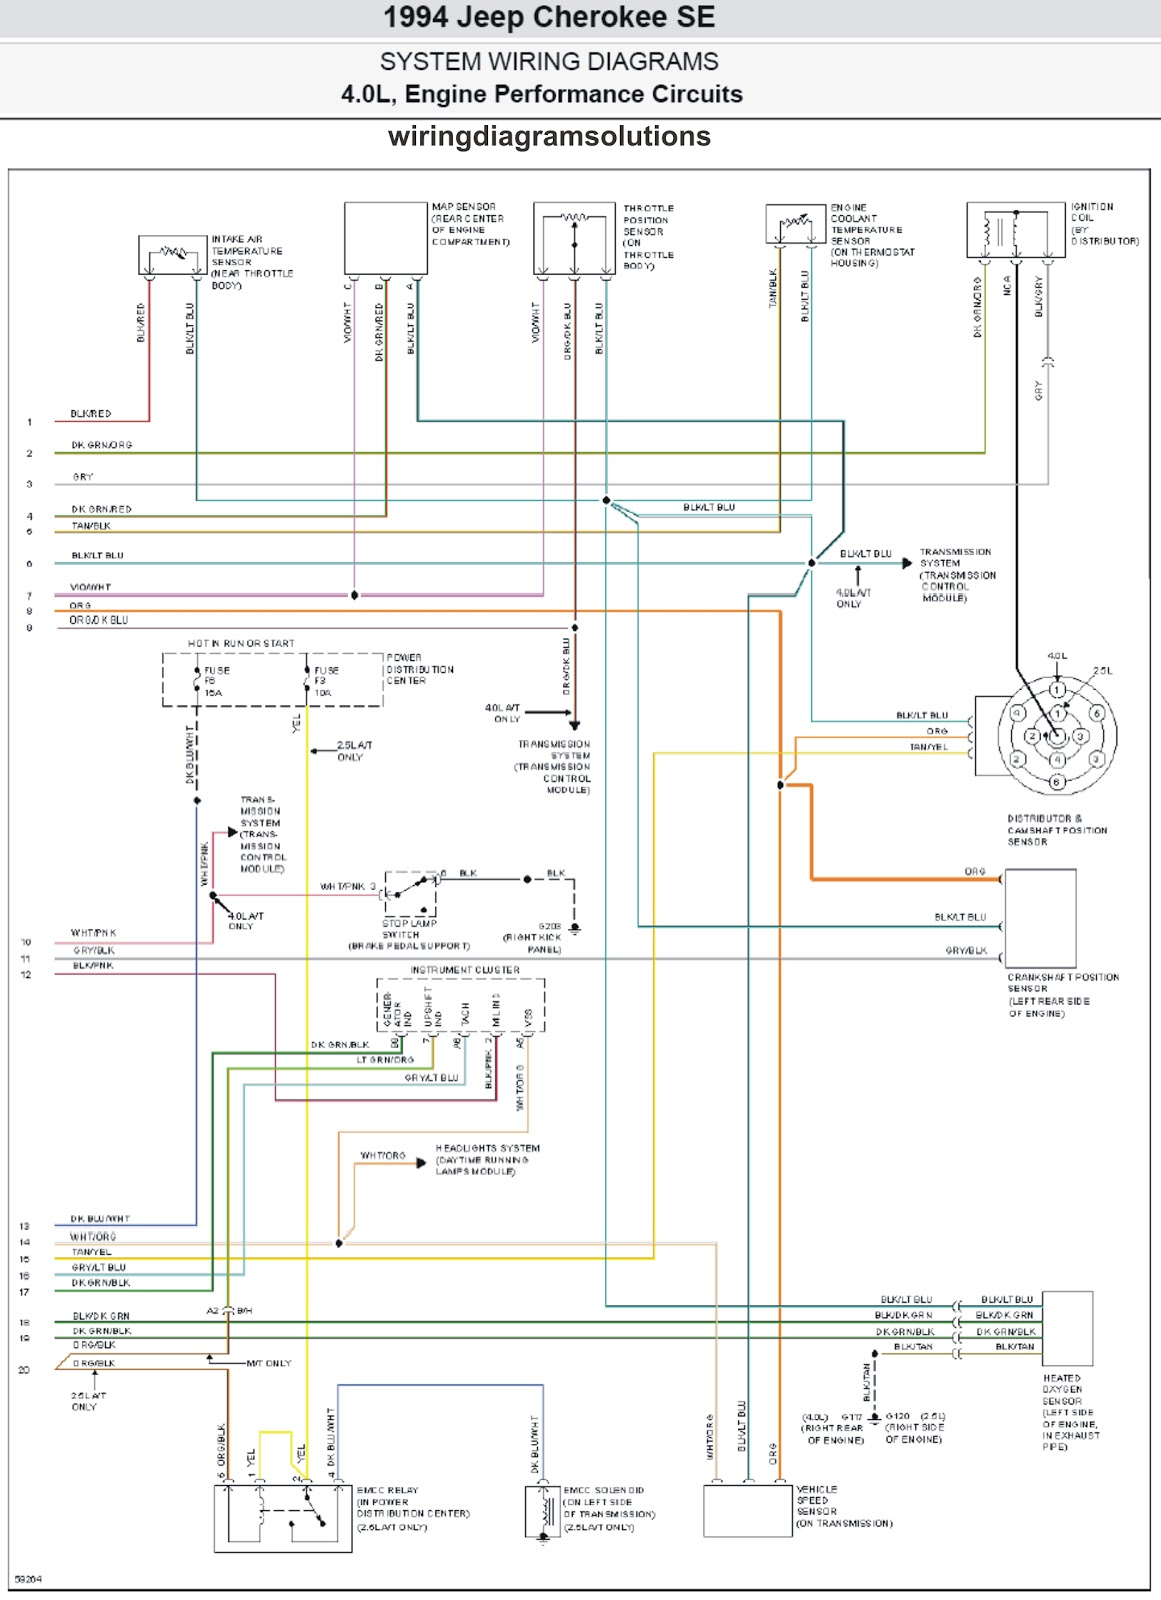 1993 jeep wrangler stereo wiring diagram images 2015 jeep jeep grand cherokee radio wiring